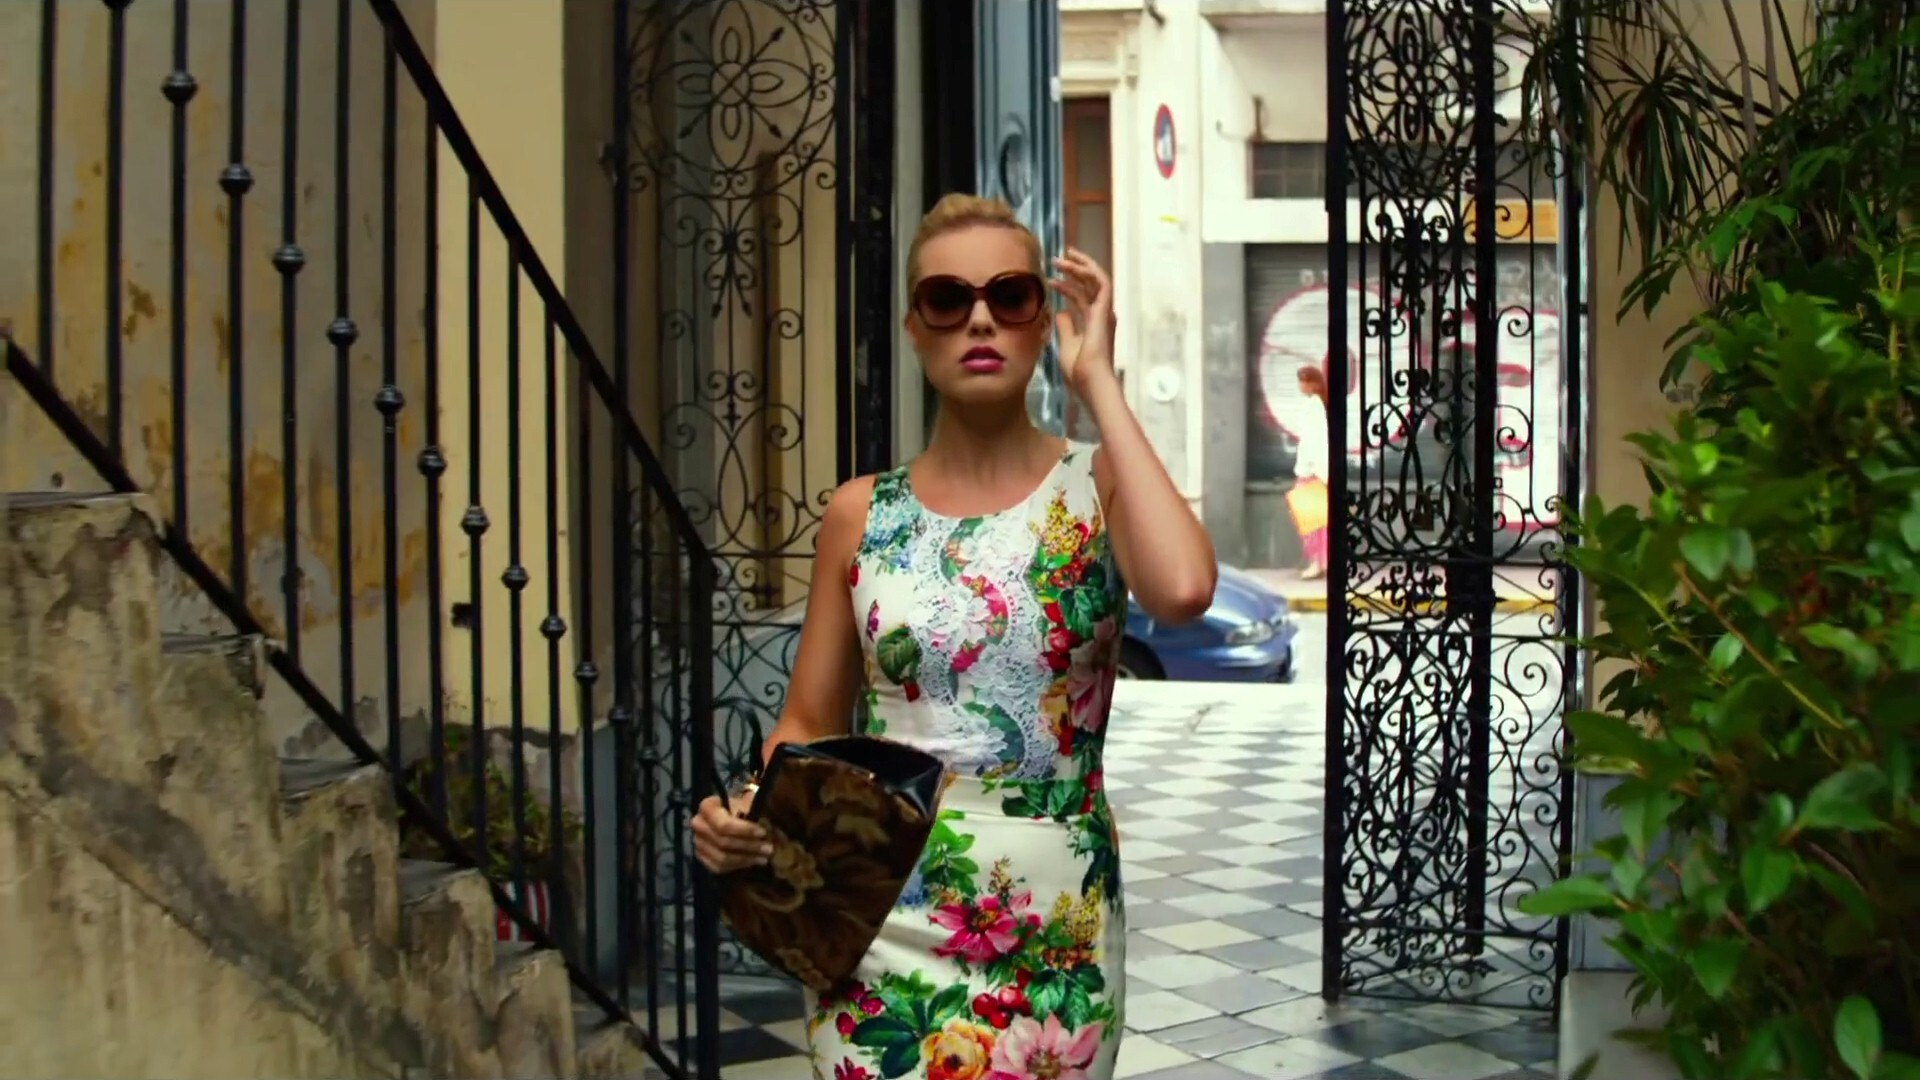 New Actress Margot Robbie In Hollywood Movie Focus Hd Wallpaper Hd